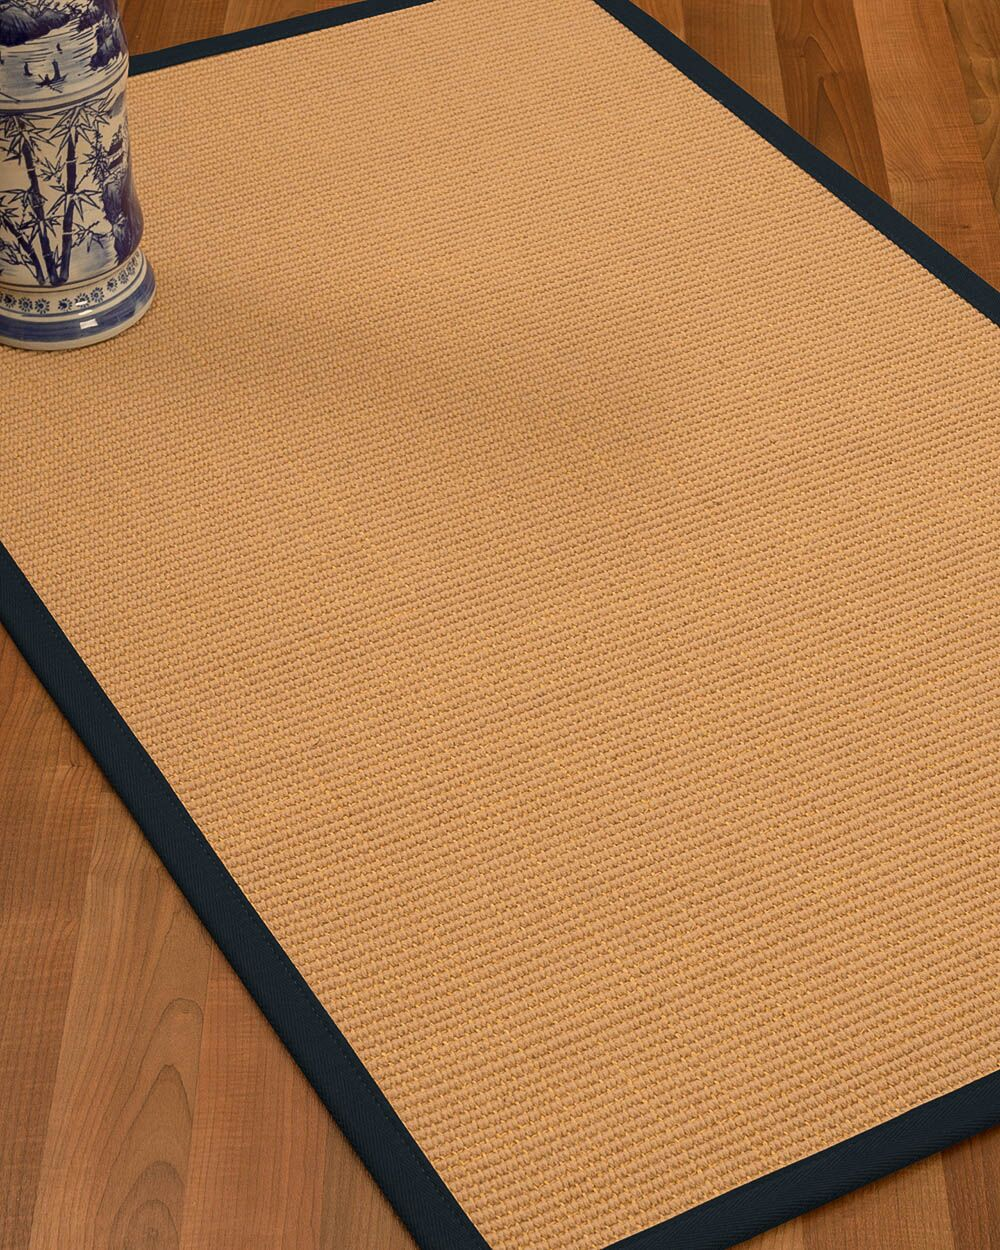 Lafayette Border Hand-Woven Wool Beige/Midnight Blue Area Rug Rug Size: Rectangle 6' x 9', Rug Pad Included: Yes